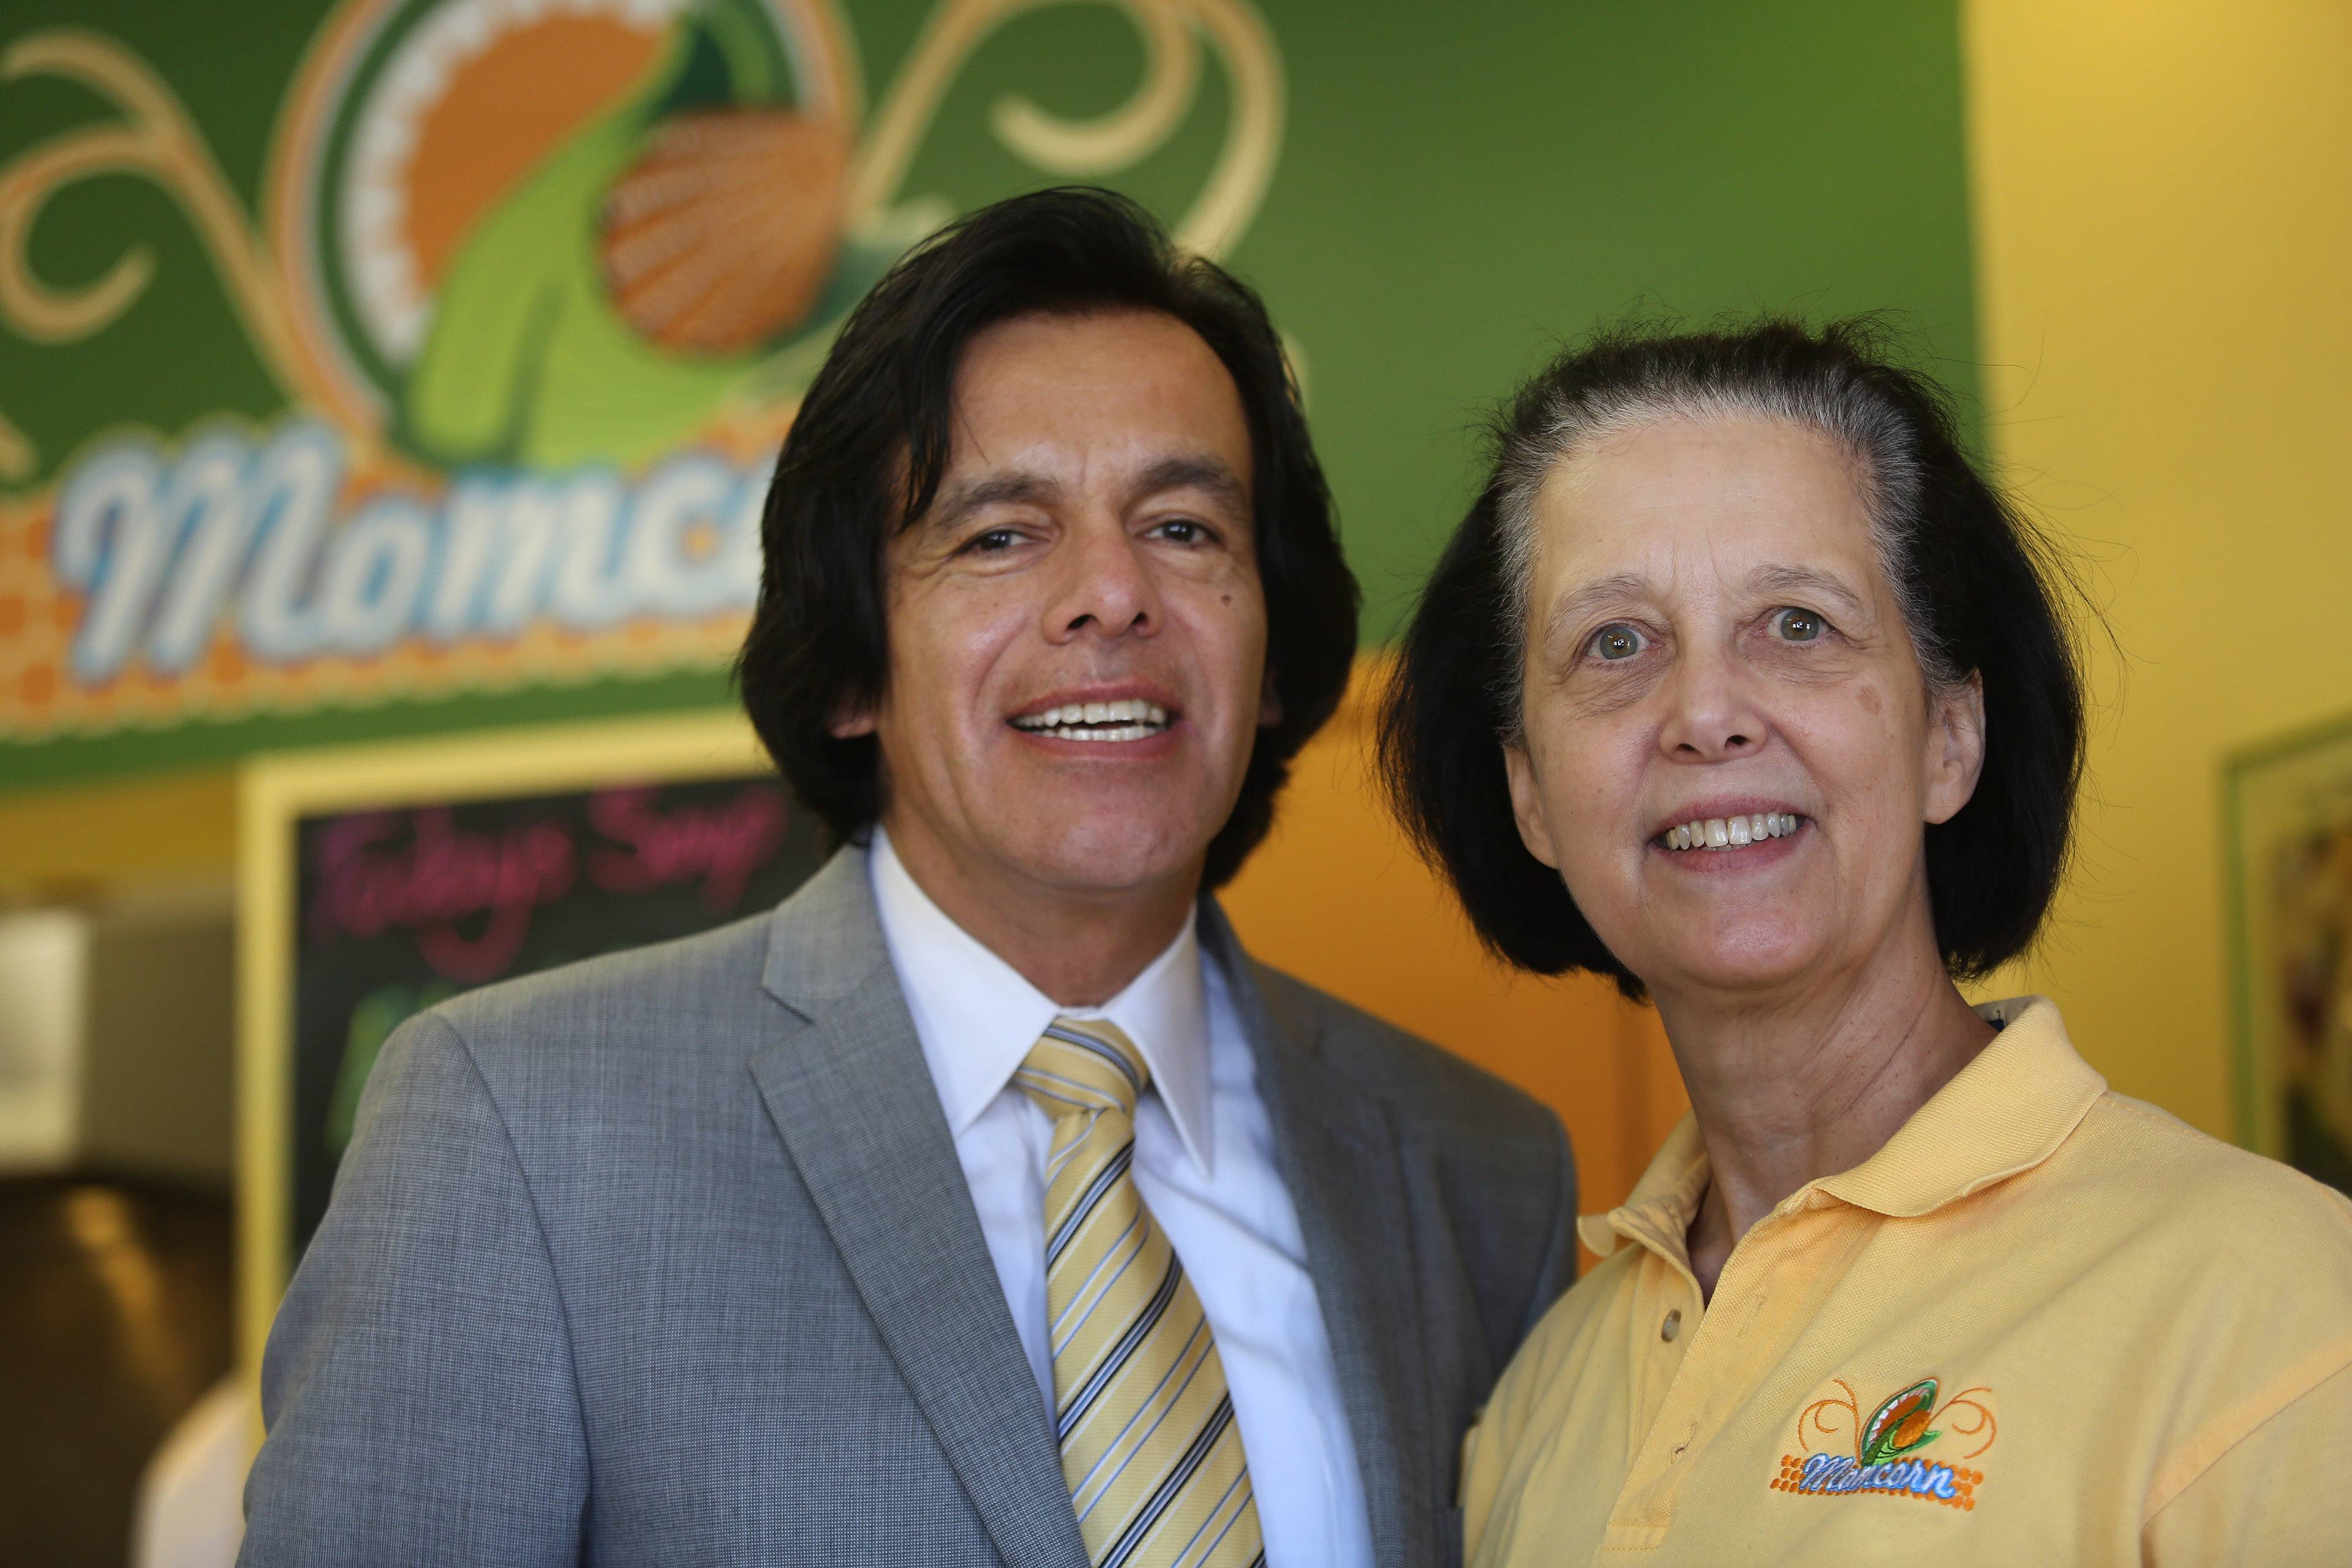 Sergio Rivera and Kathy Ross opened Momcorn restaurant in Gurnee in 2012.